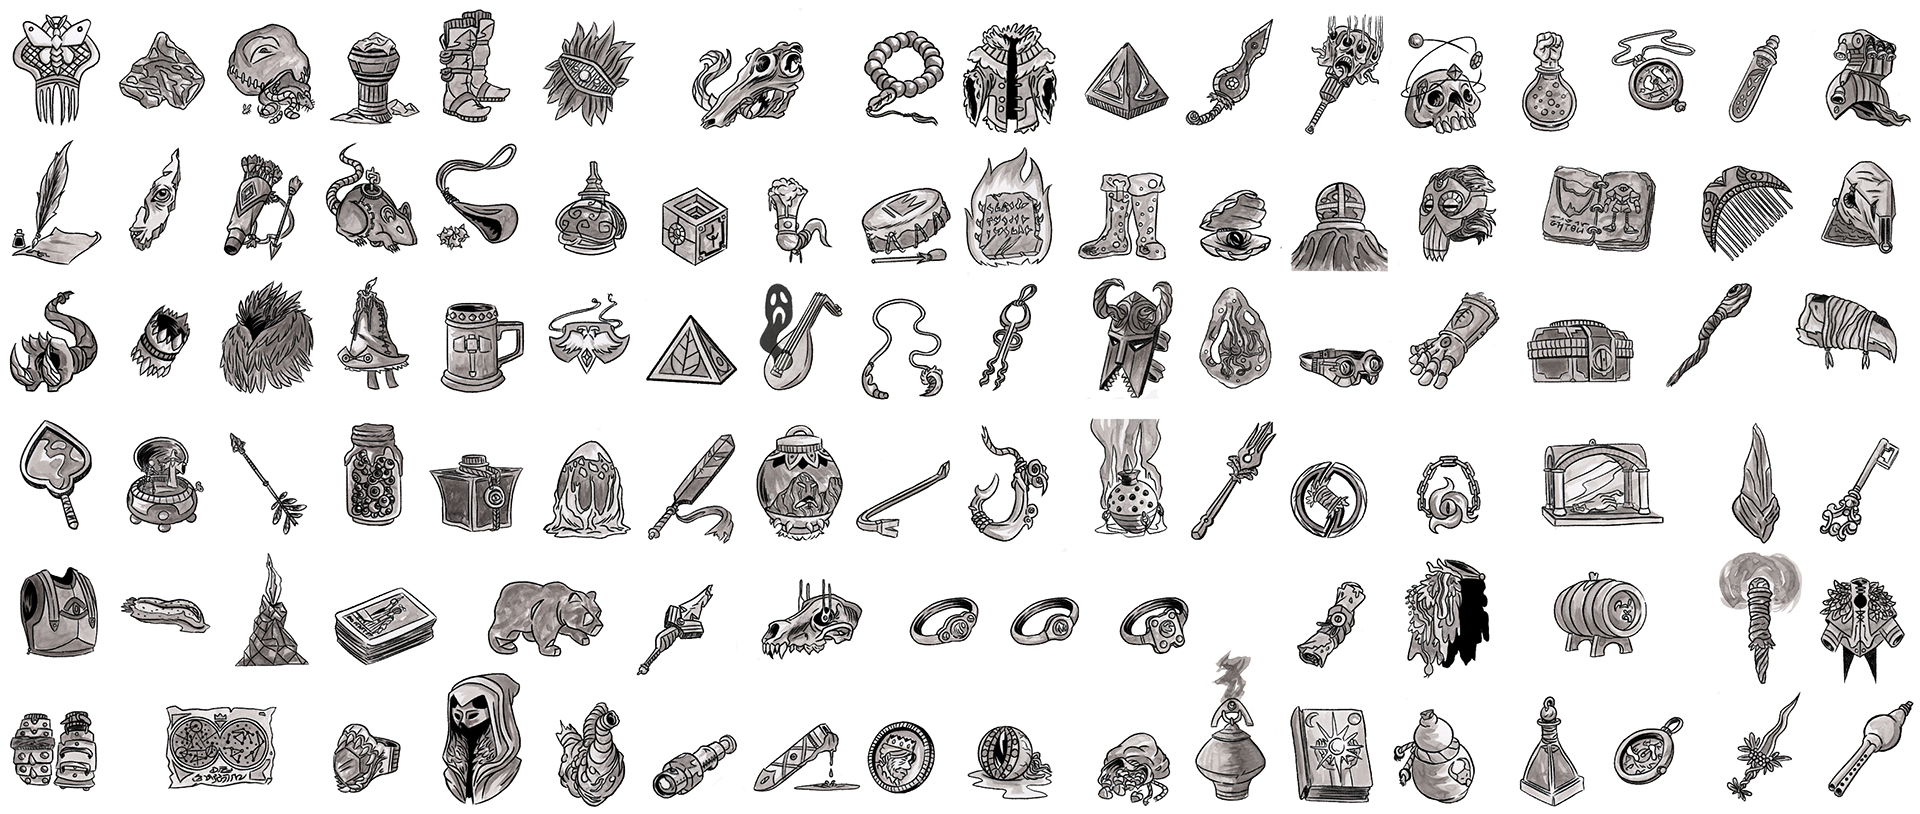 100 magic items spread